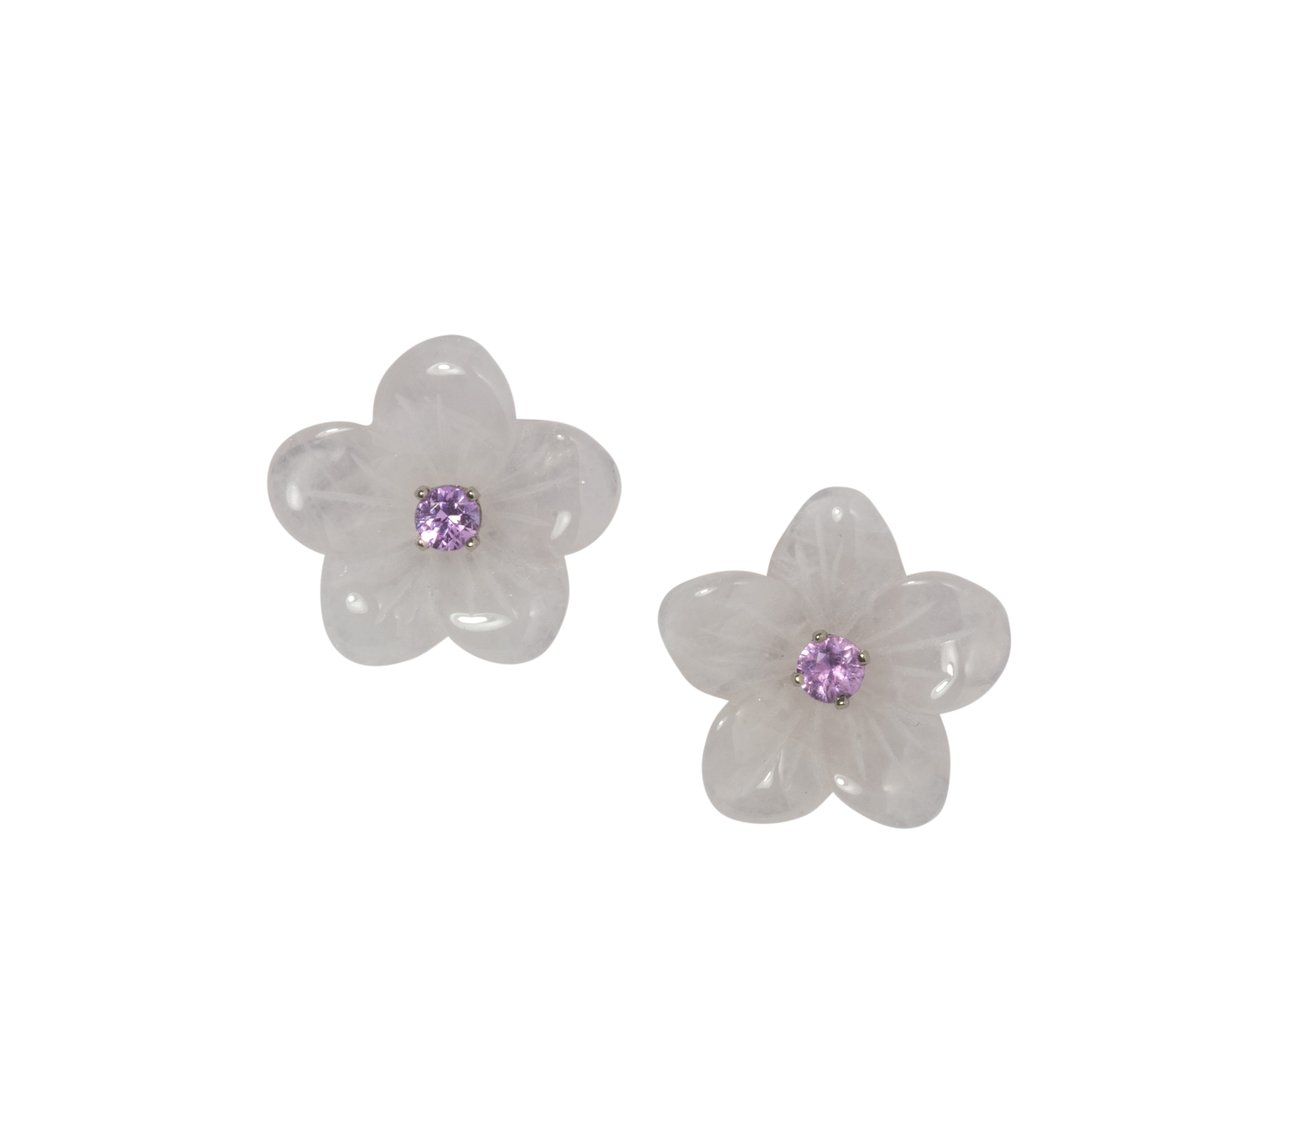 My Favorite Jewelry Designers For Unique Jewelry: The Mini Collection State Street Baby Flower Stud Earrings